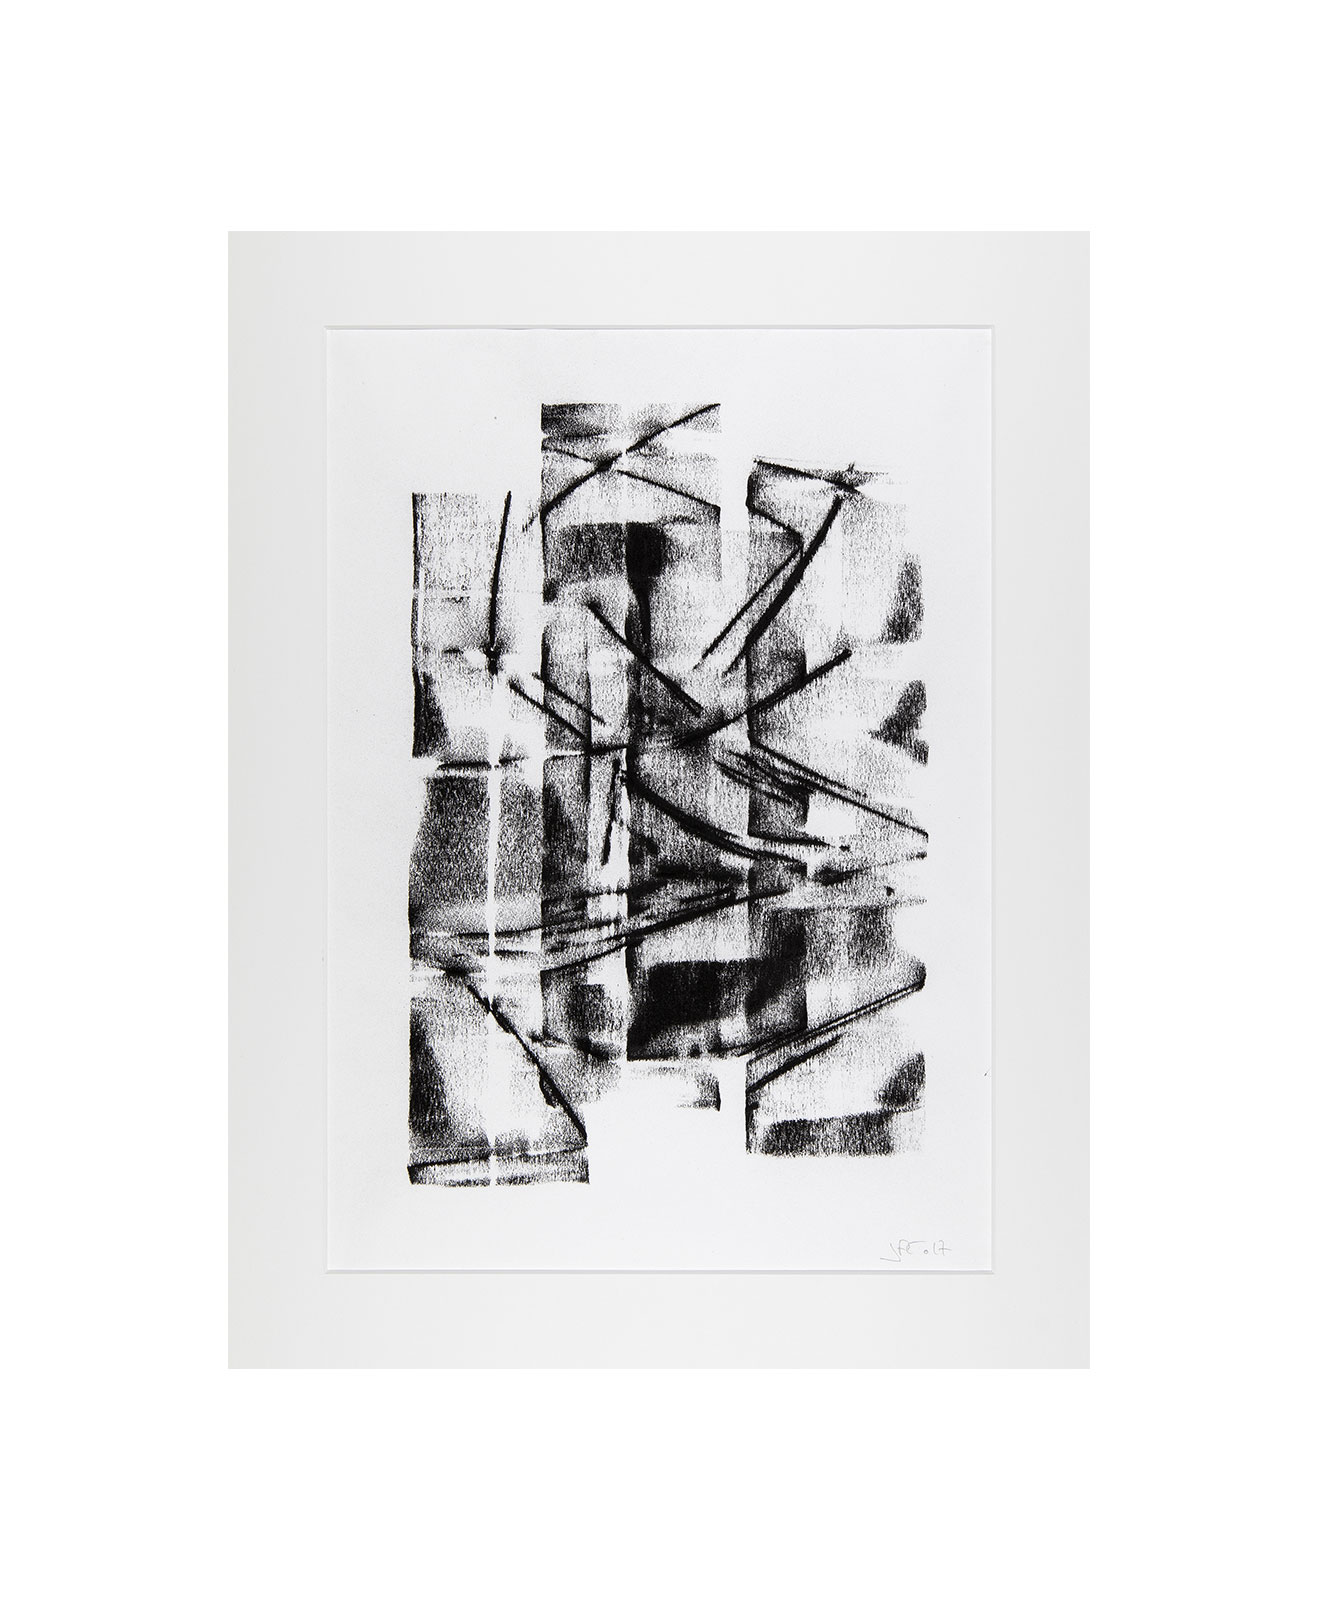 Cha 1.17, Charcoal on paper, black and white artwork, drawing, jf escande, contemporary art